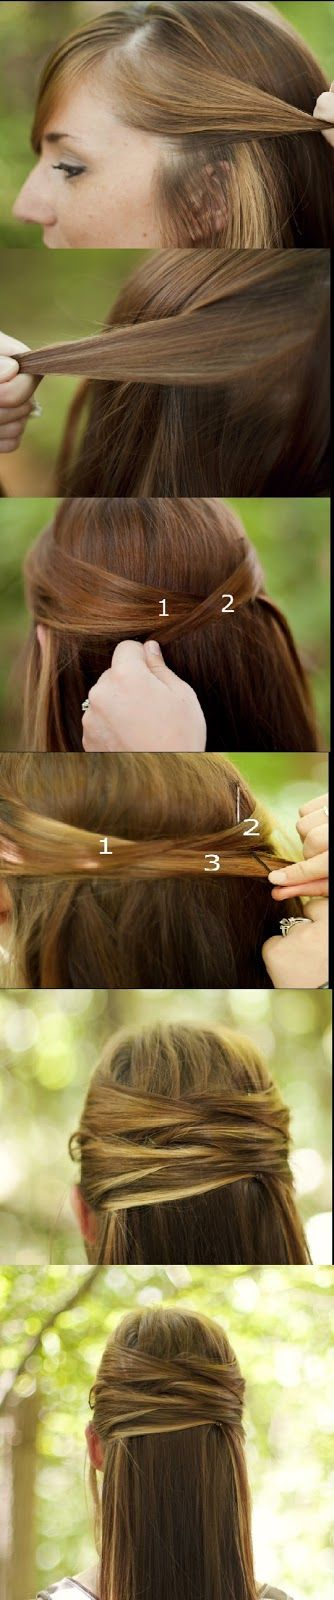 Overlapping Half-Up Half-Down Hair Tutorial Looks great all the way down the back of your head, with a fishtail side braid to finish it off